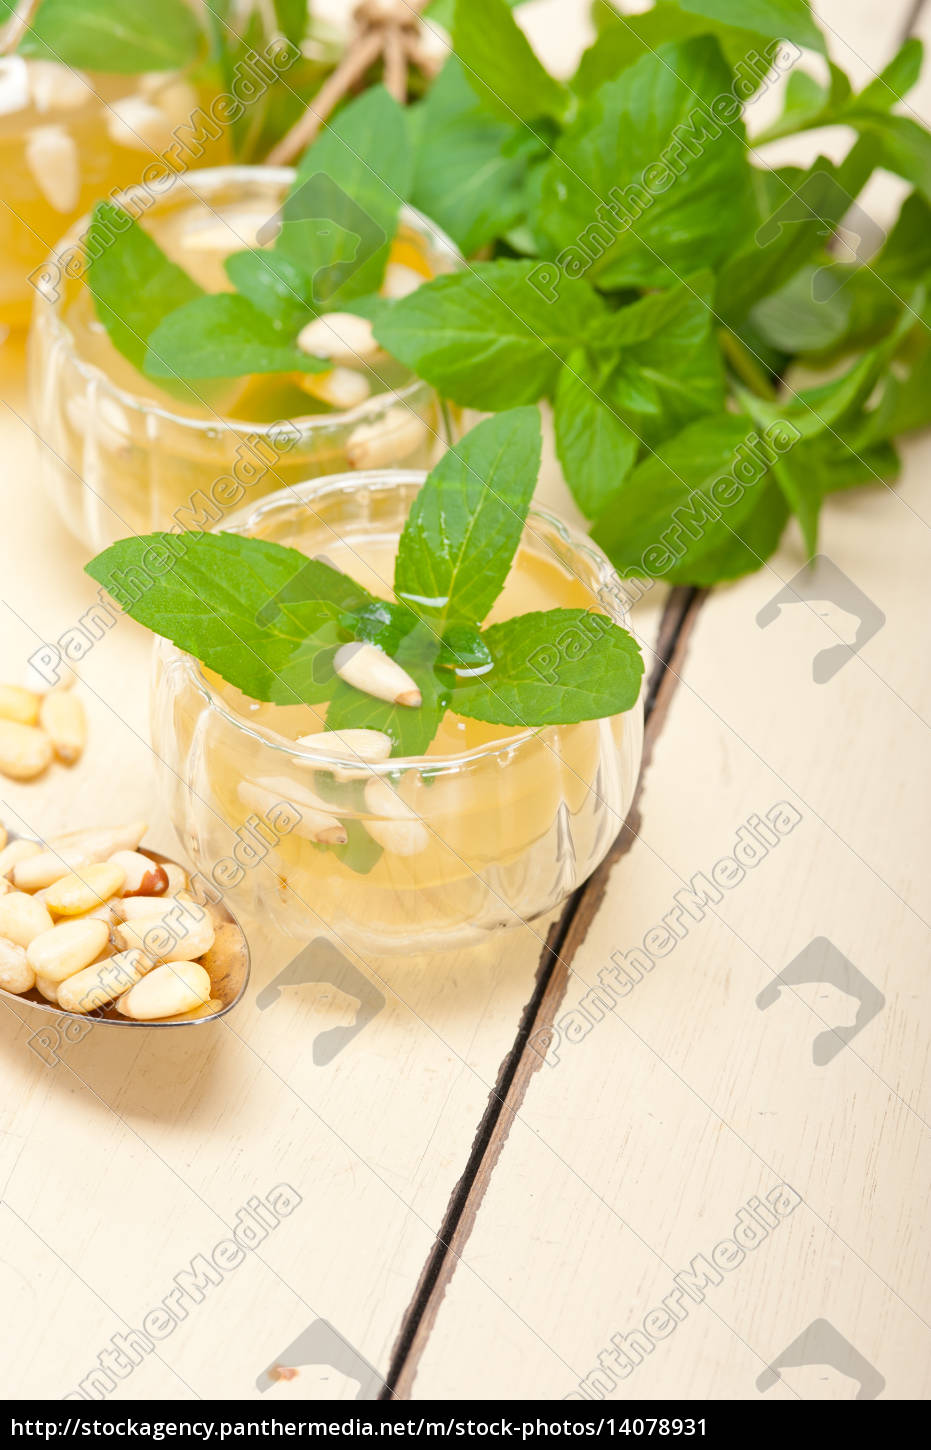 arab, traditional, mint, and, pine, nuts - 14078931